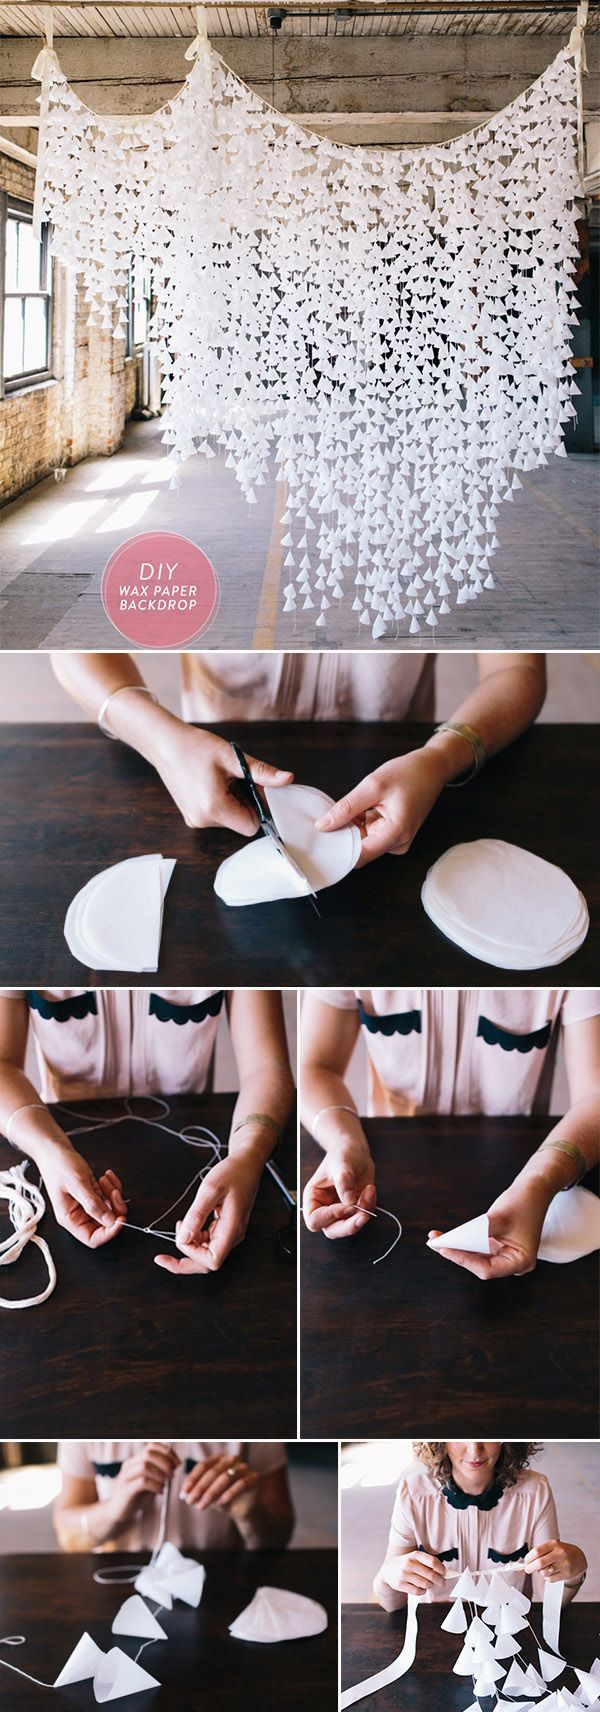 Best 25 diy wedding decorations ideas on pinterest diy wedding diy wedding ideas 10 perfect ways to use paper for weddings solutioingenieria Images